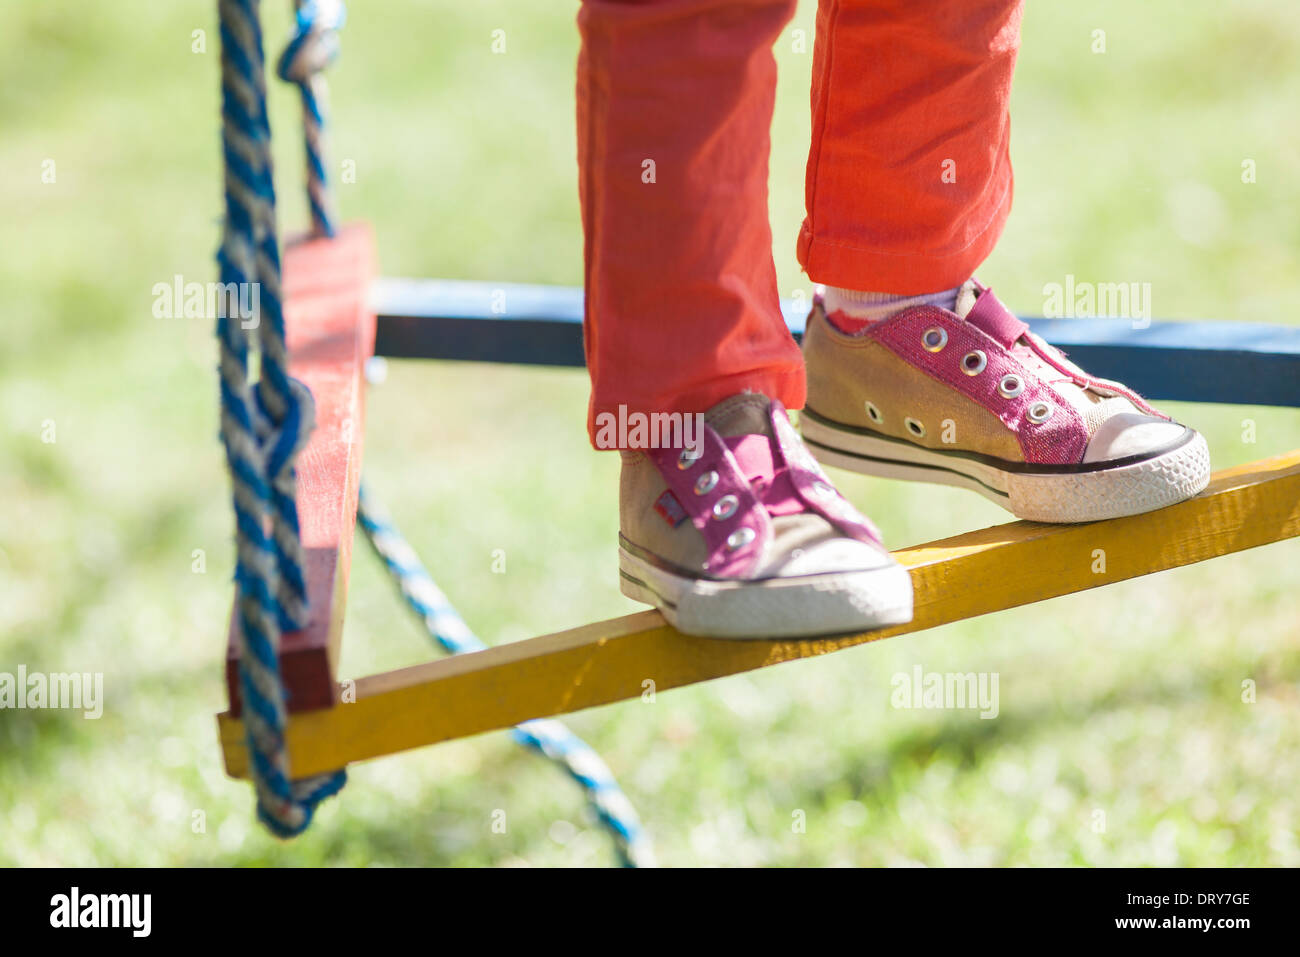 Child standing on swing, low section - Stock Image